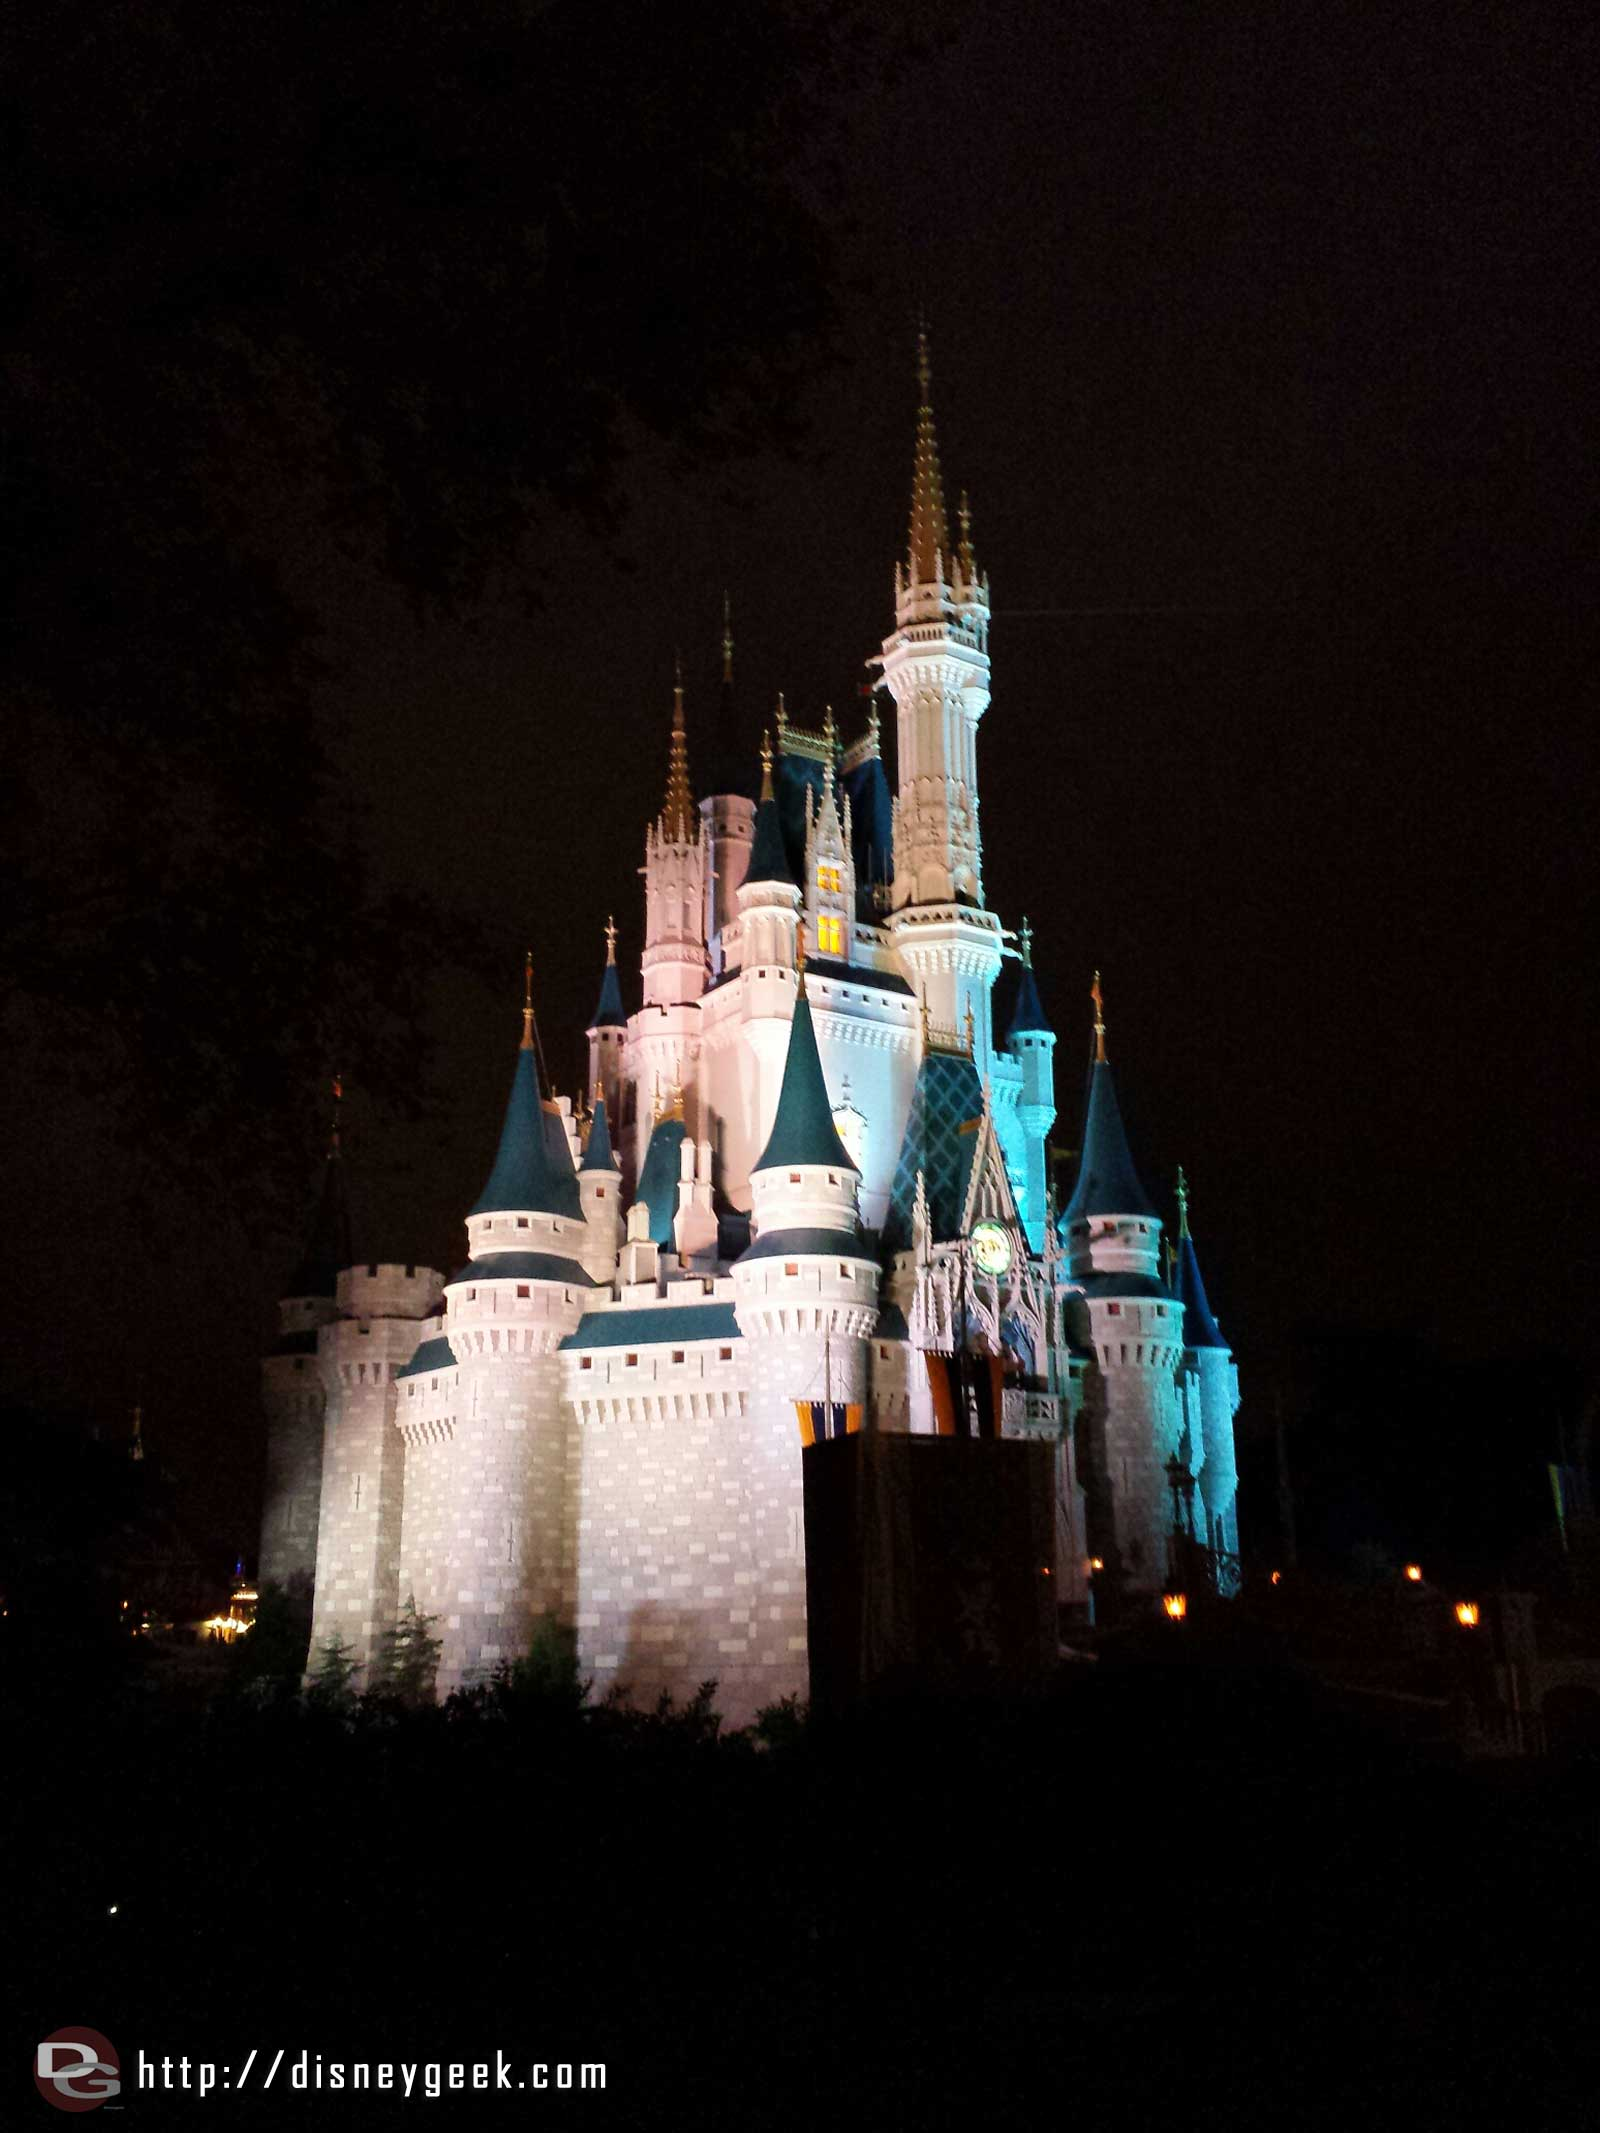 Cinderella Castle this evening #WDW